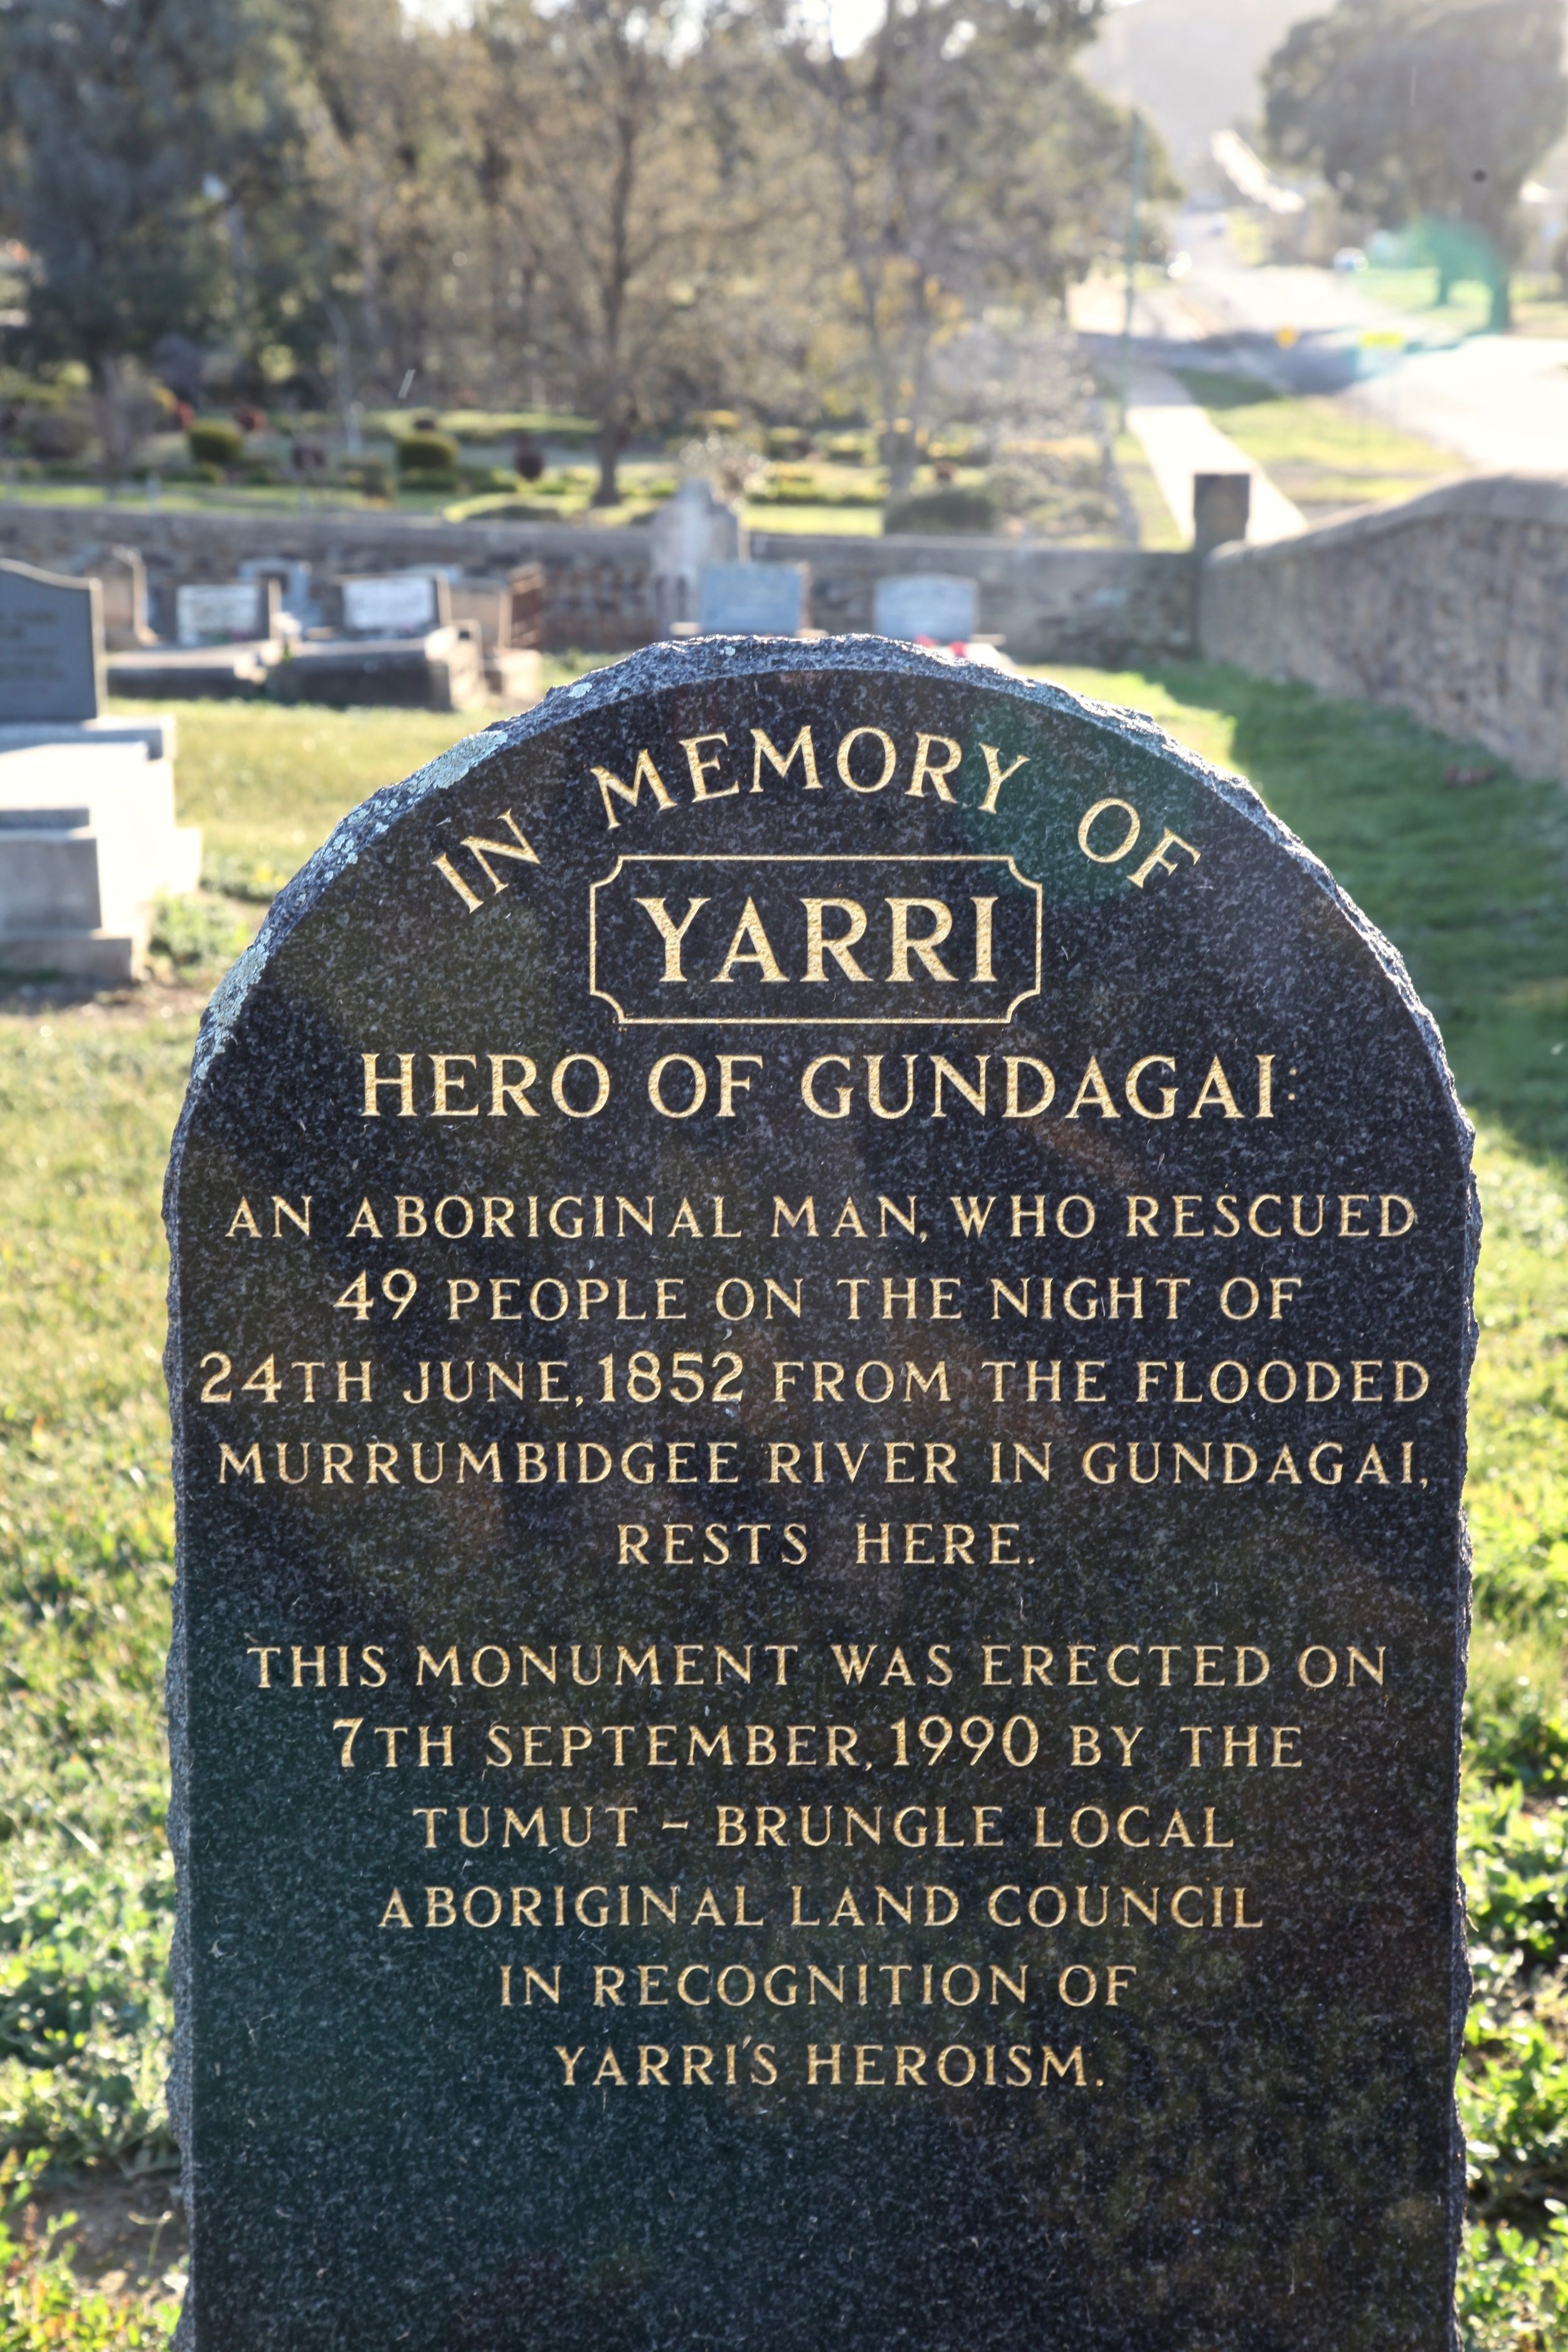 Yarri is remembered as a hero for rescuing 49 people during the devastating flood of 1852.